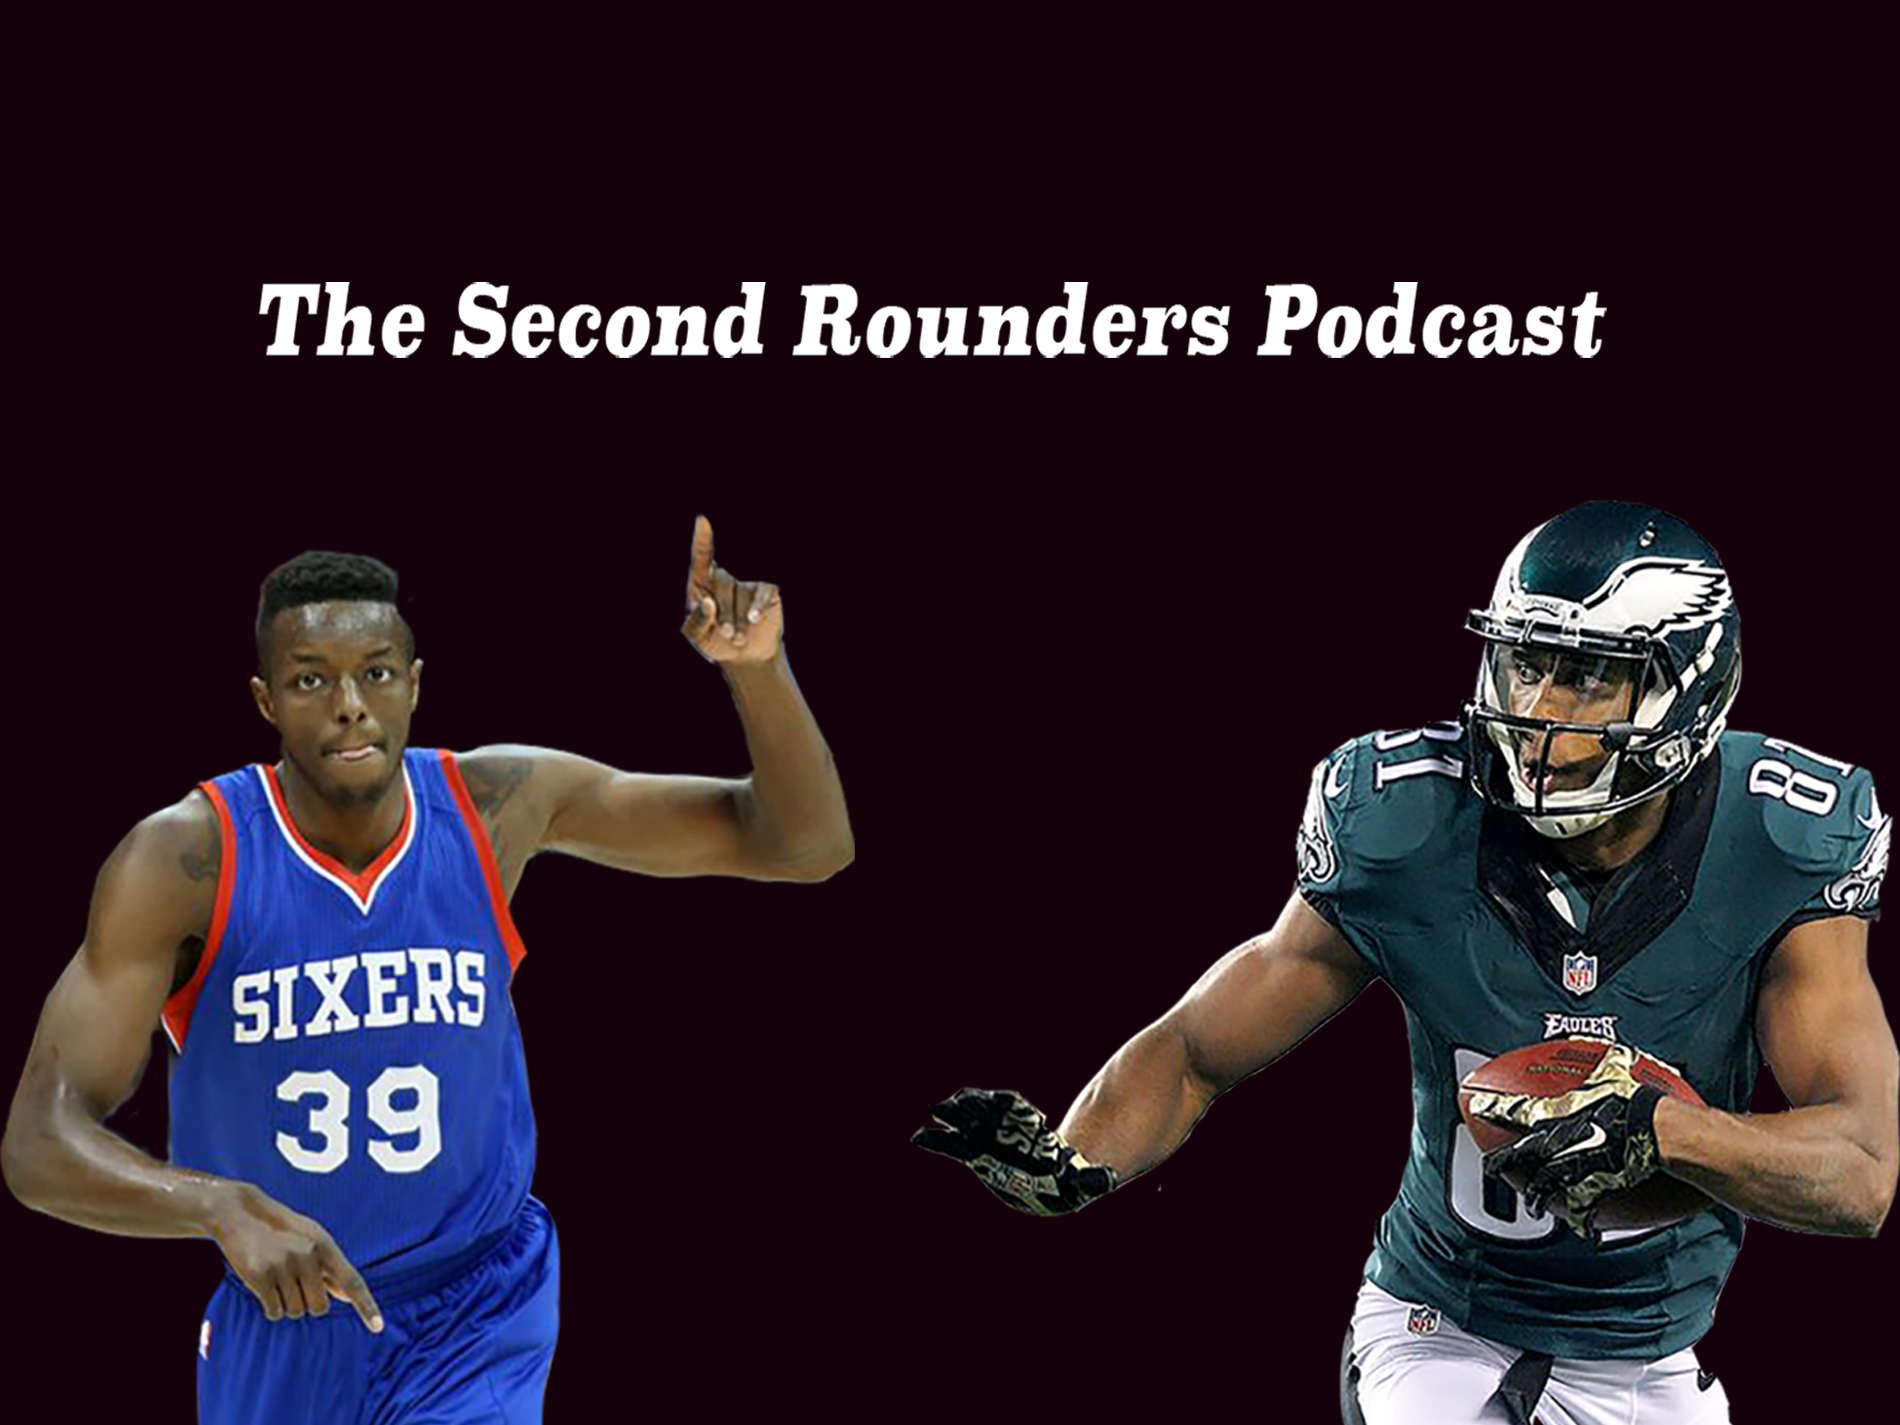 The Second Rounders